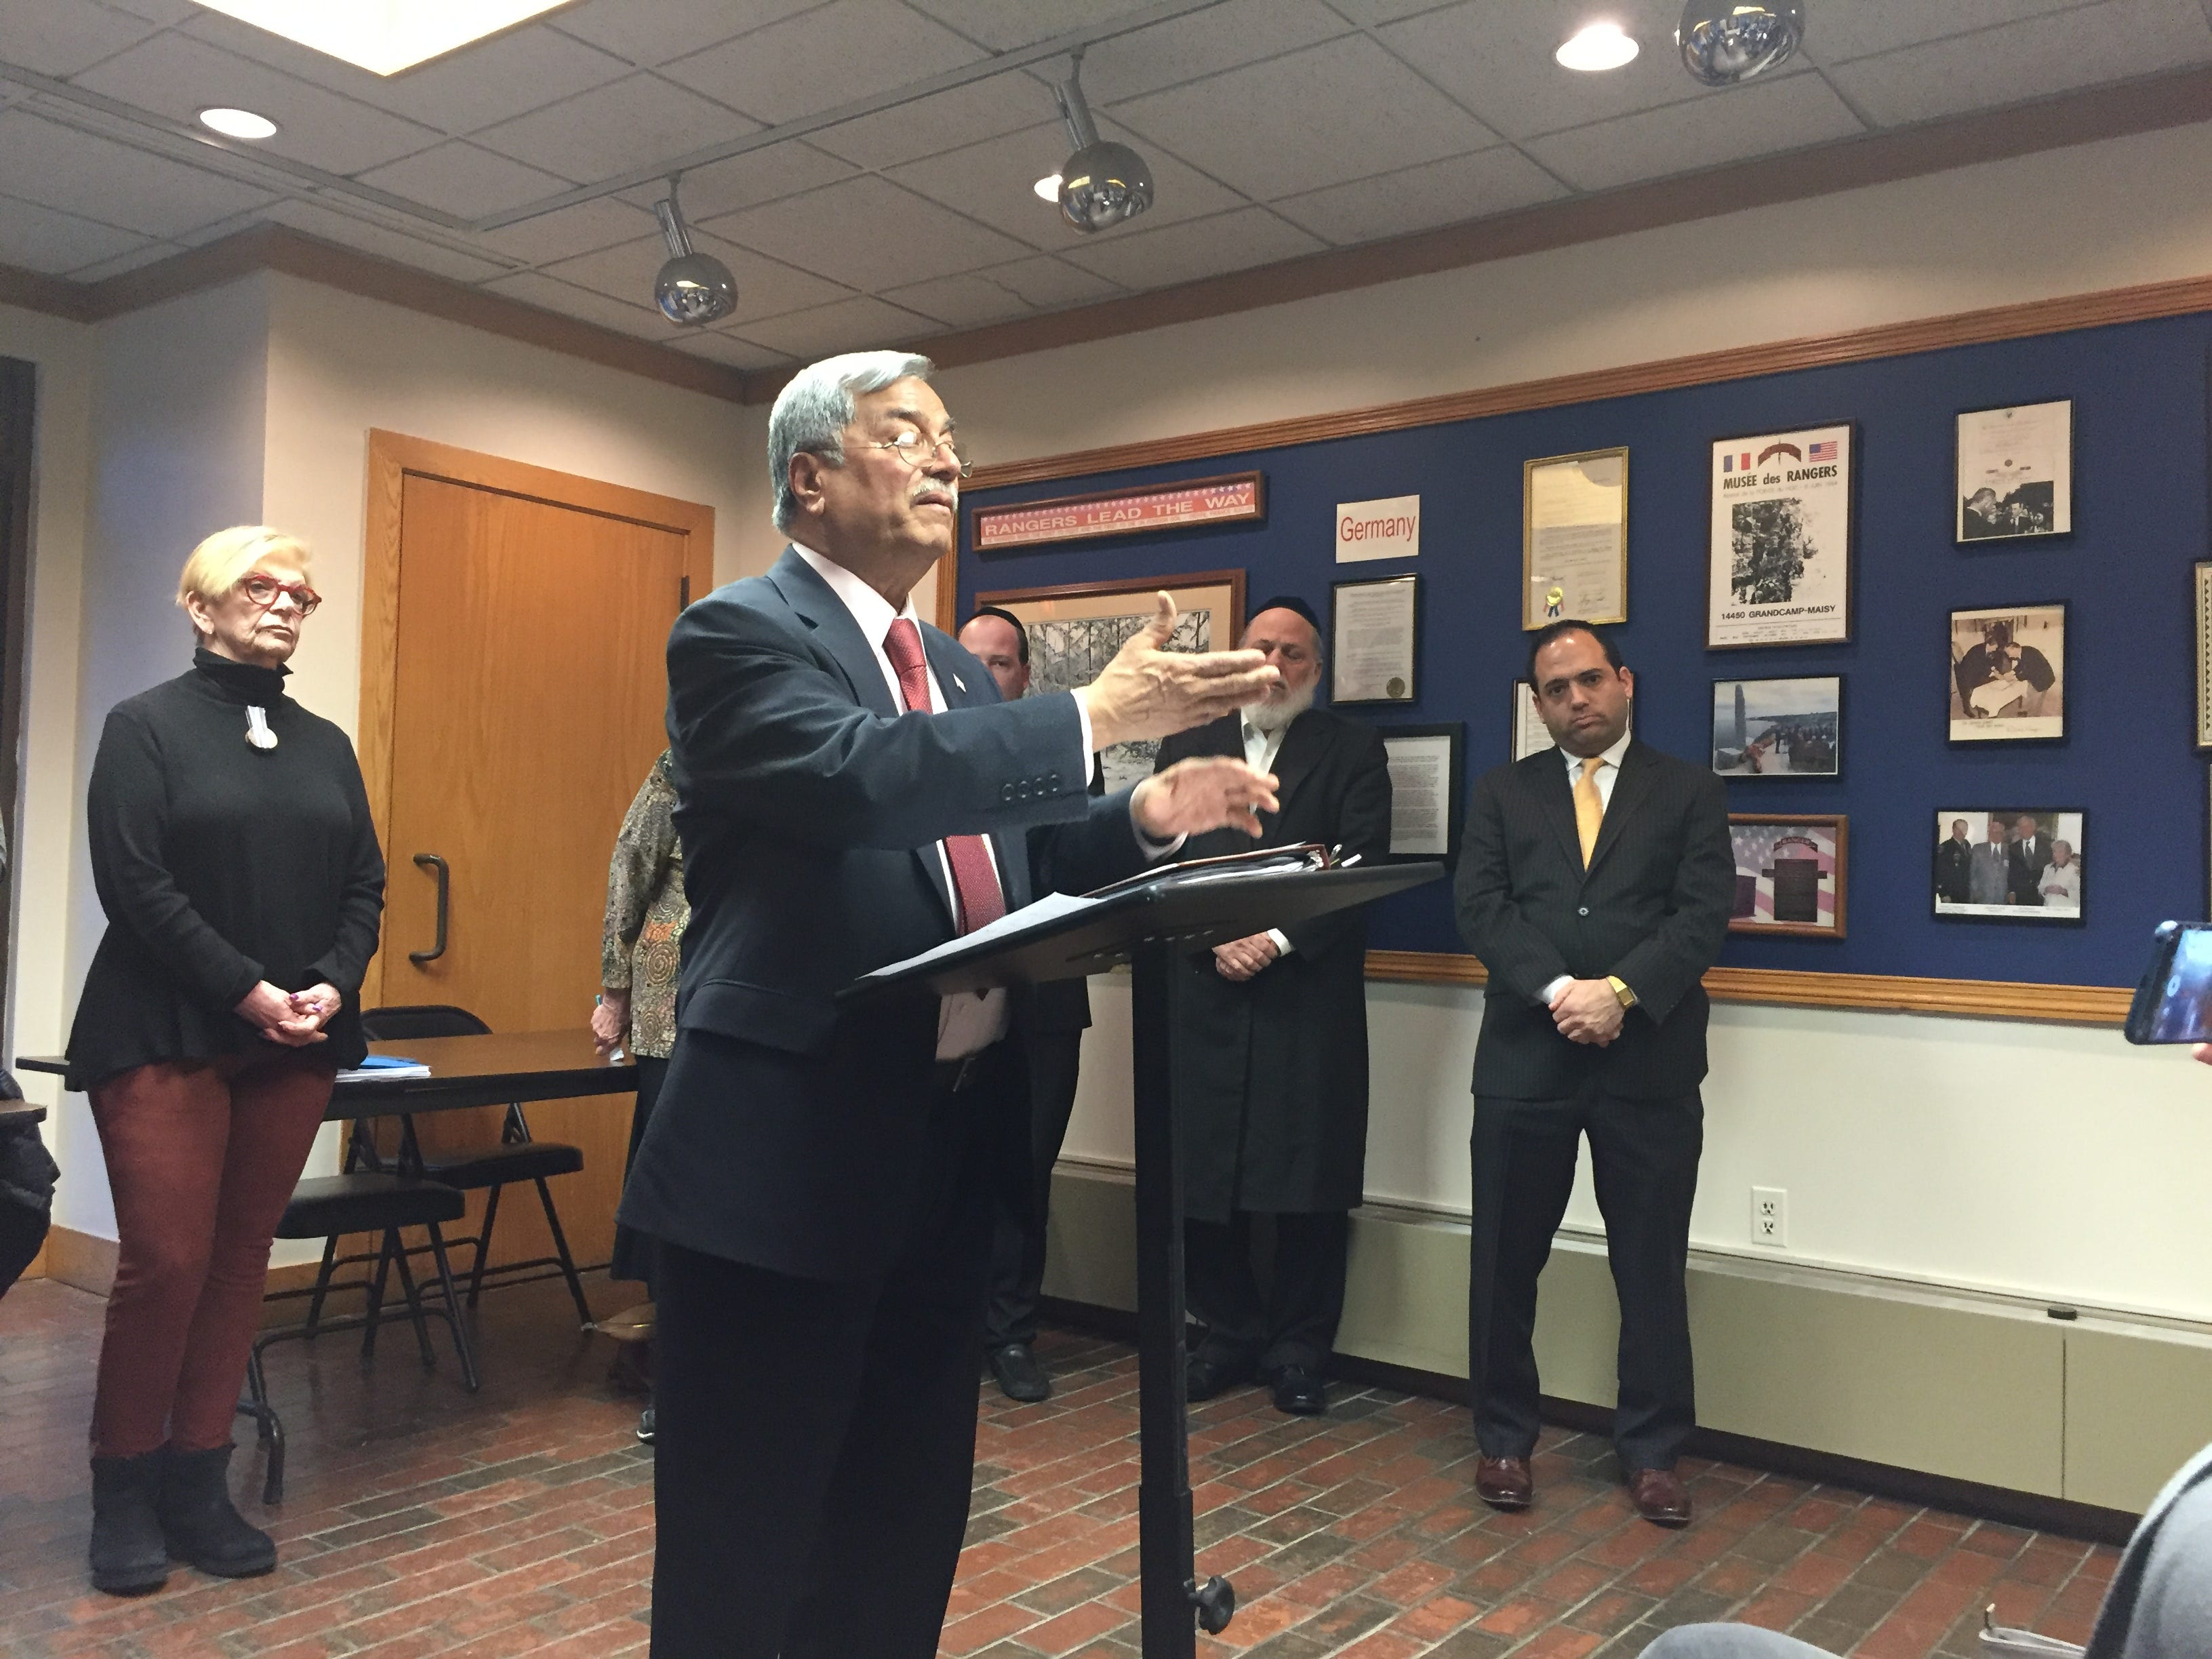 Mohammad Ali Chaudry speaks at a press conference where religious leaders called on the Toms River council to formally denounce Rise Up Ocean County